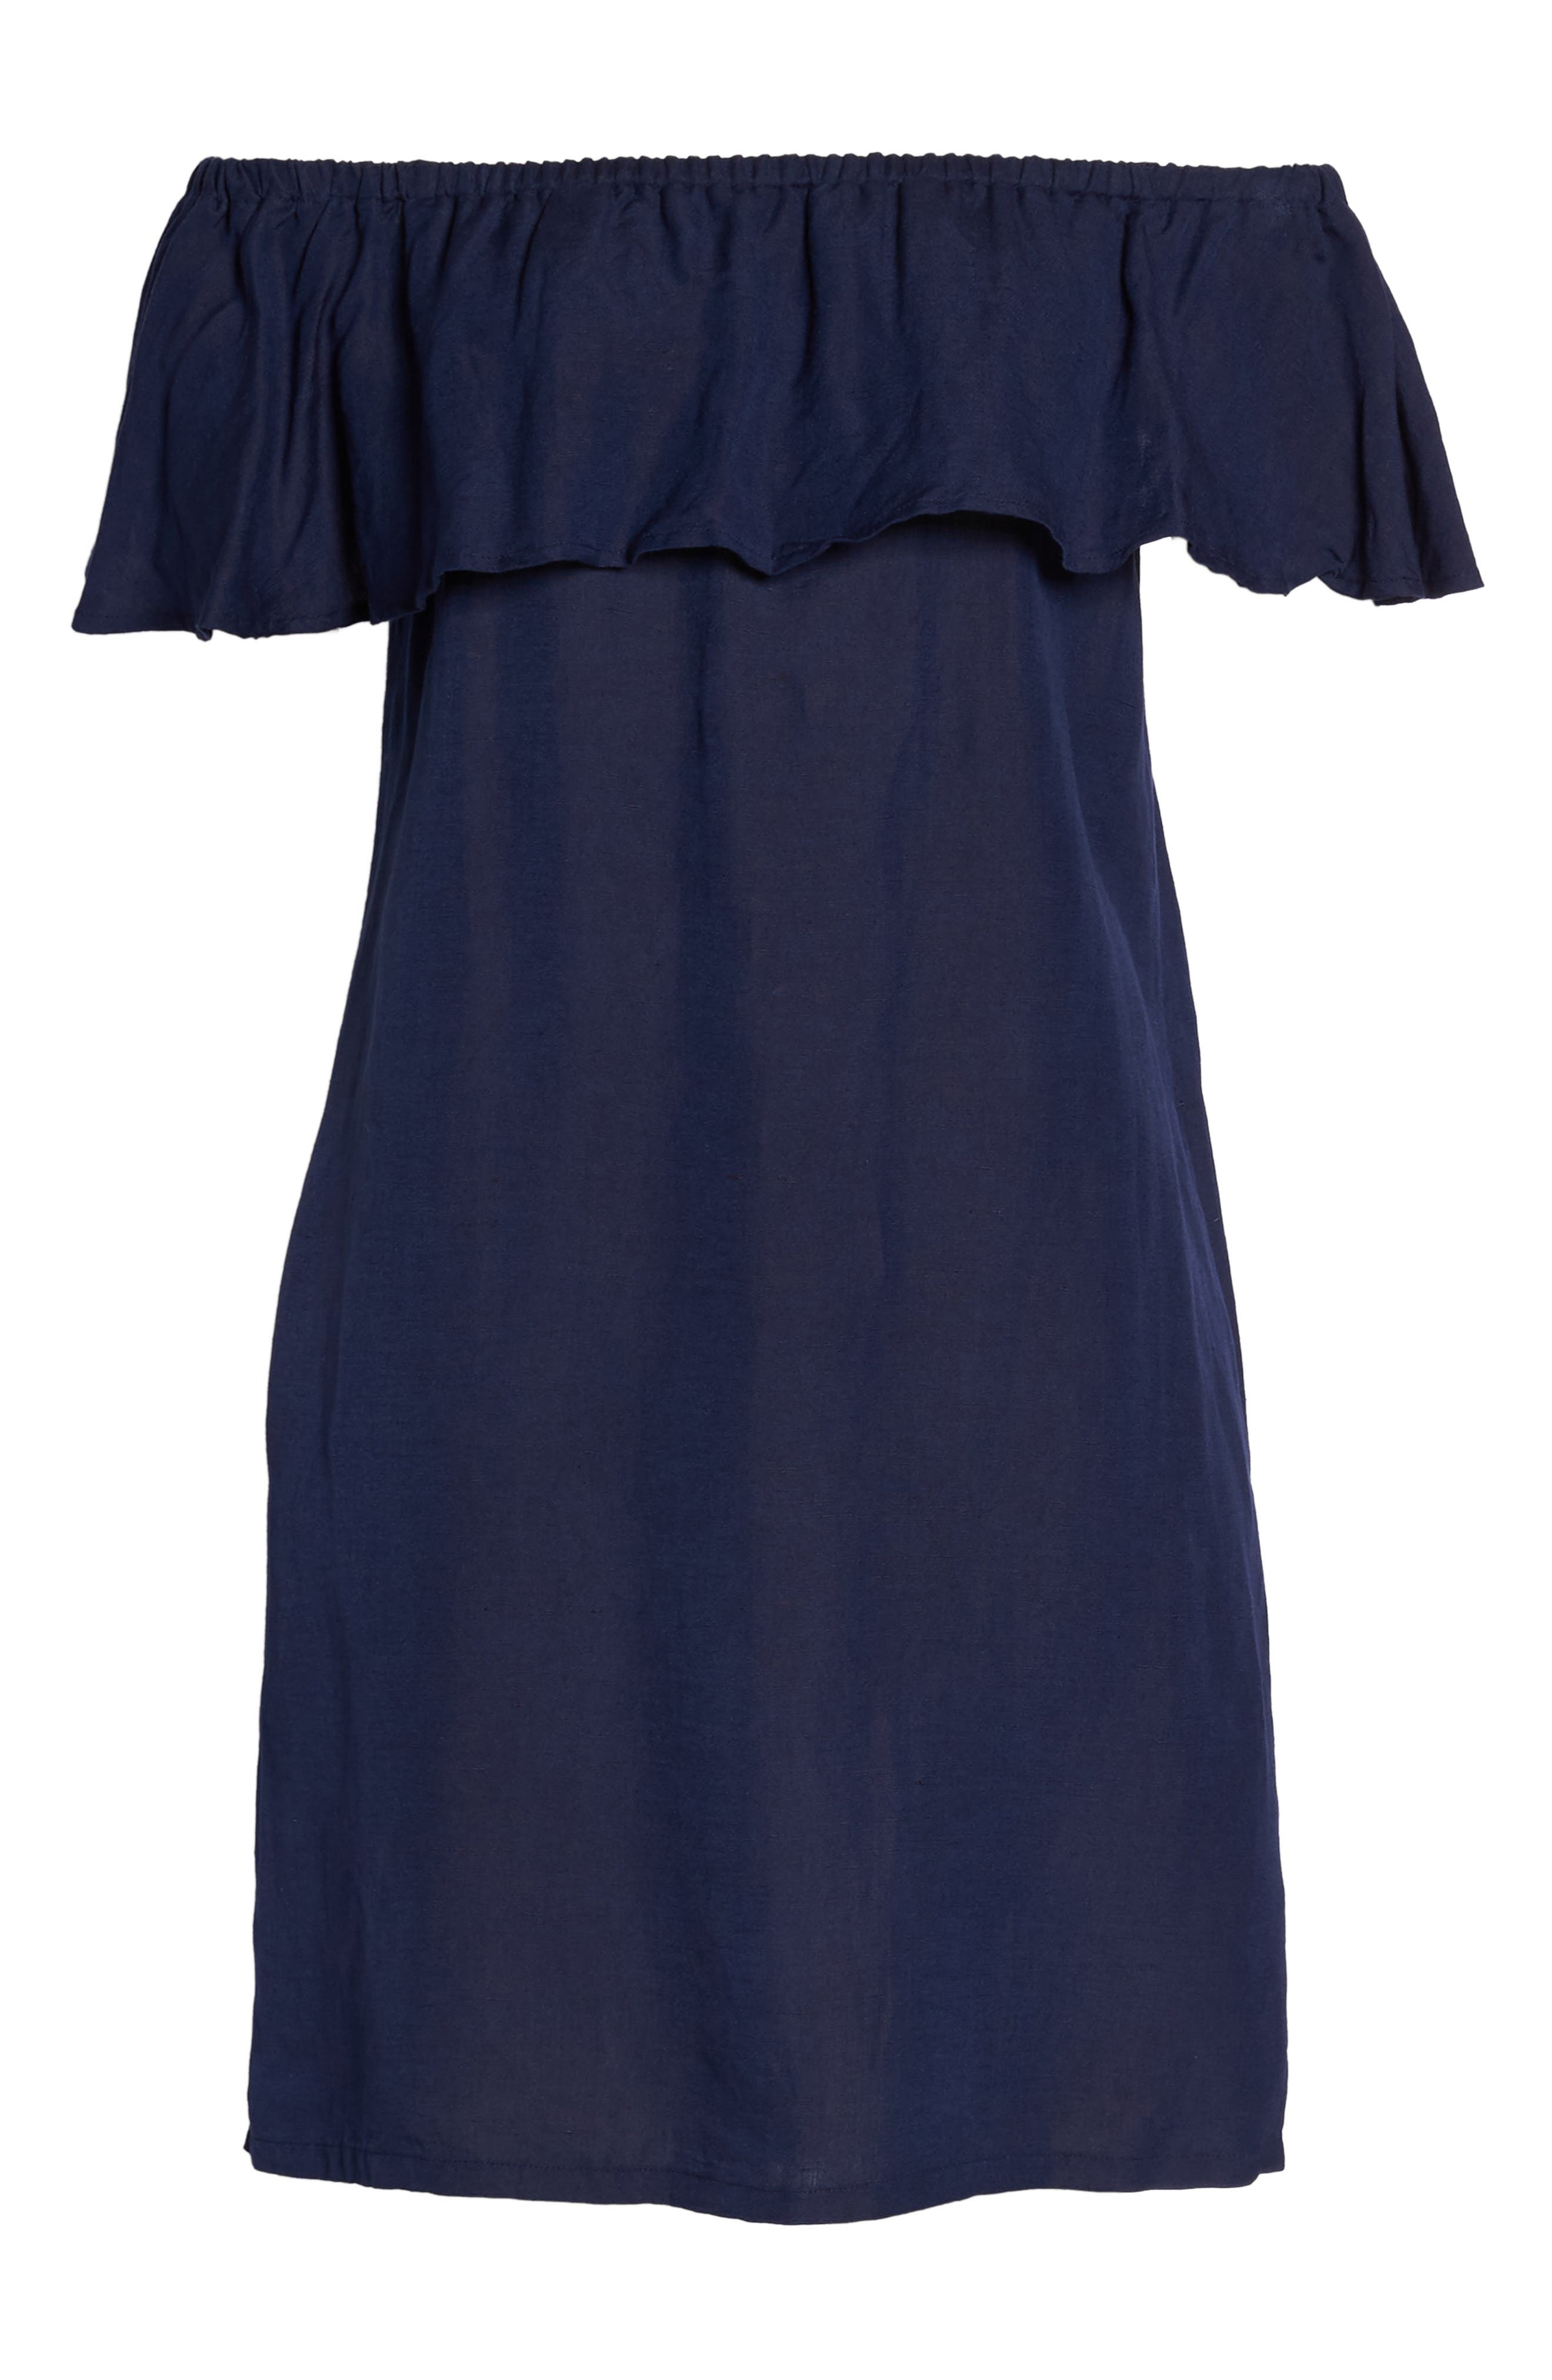 Off the Shoulder Cover-Up Dress,                             Alternate thumbnail 6, color,                             MARE BLUE